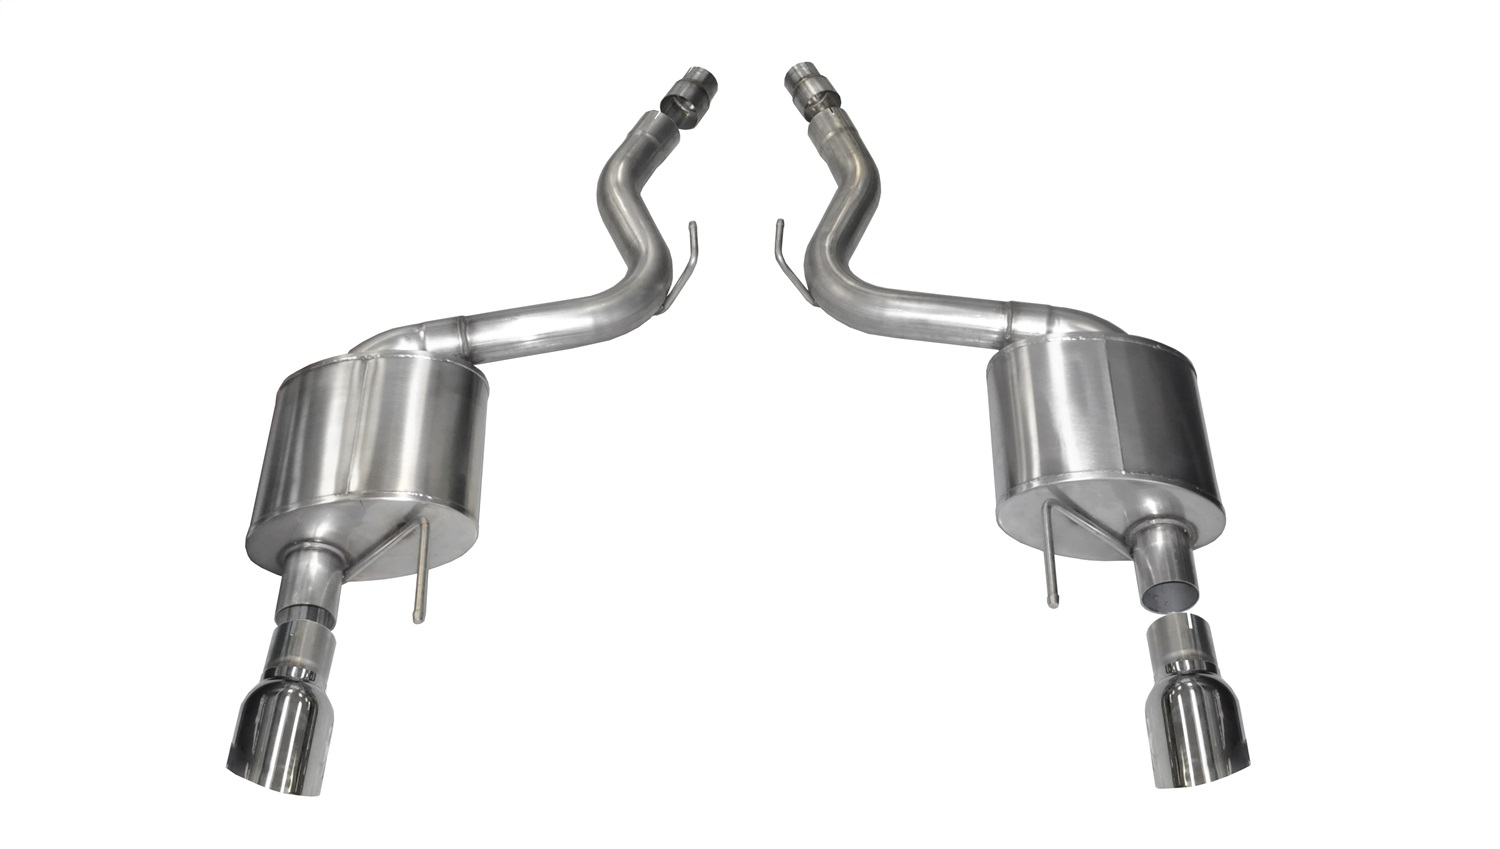 Corsa Performance 14326 Sport Axle-Back Exhaust System Fits 15-17 Mustang